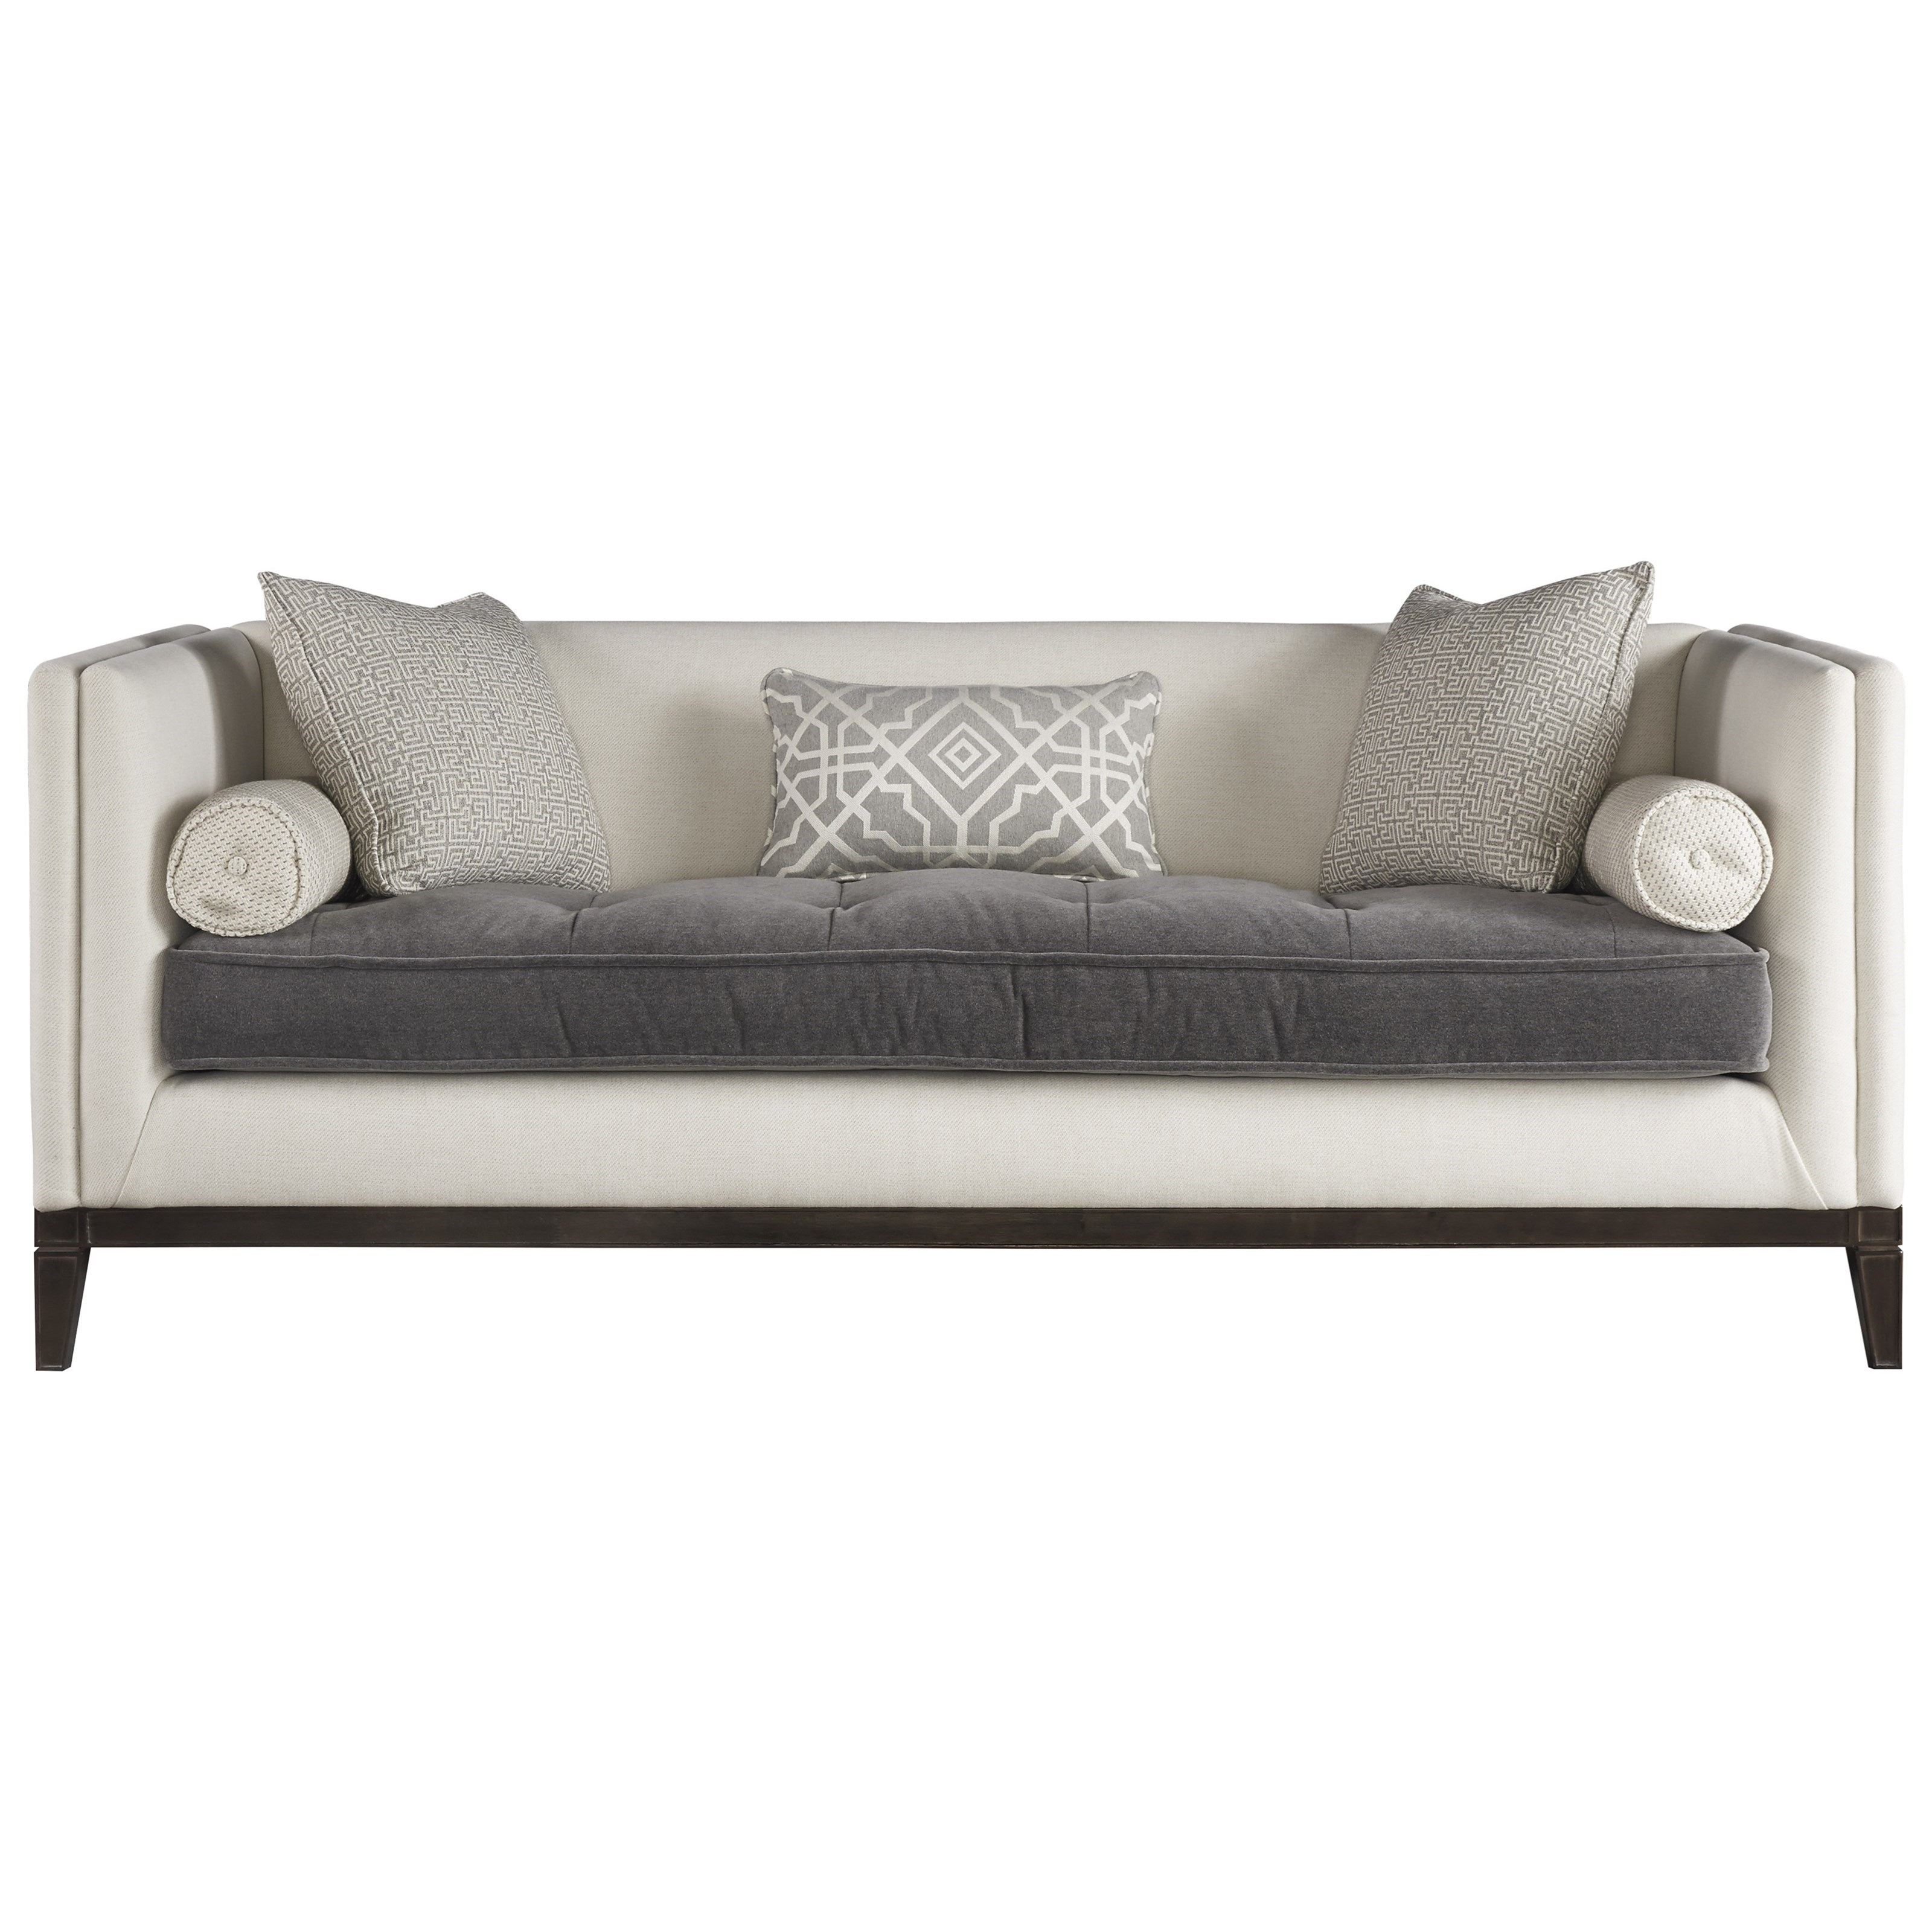 Universal Modern Sofa - Item Number: 678501-610